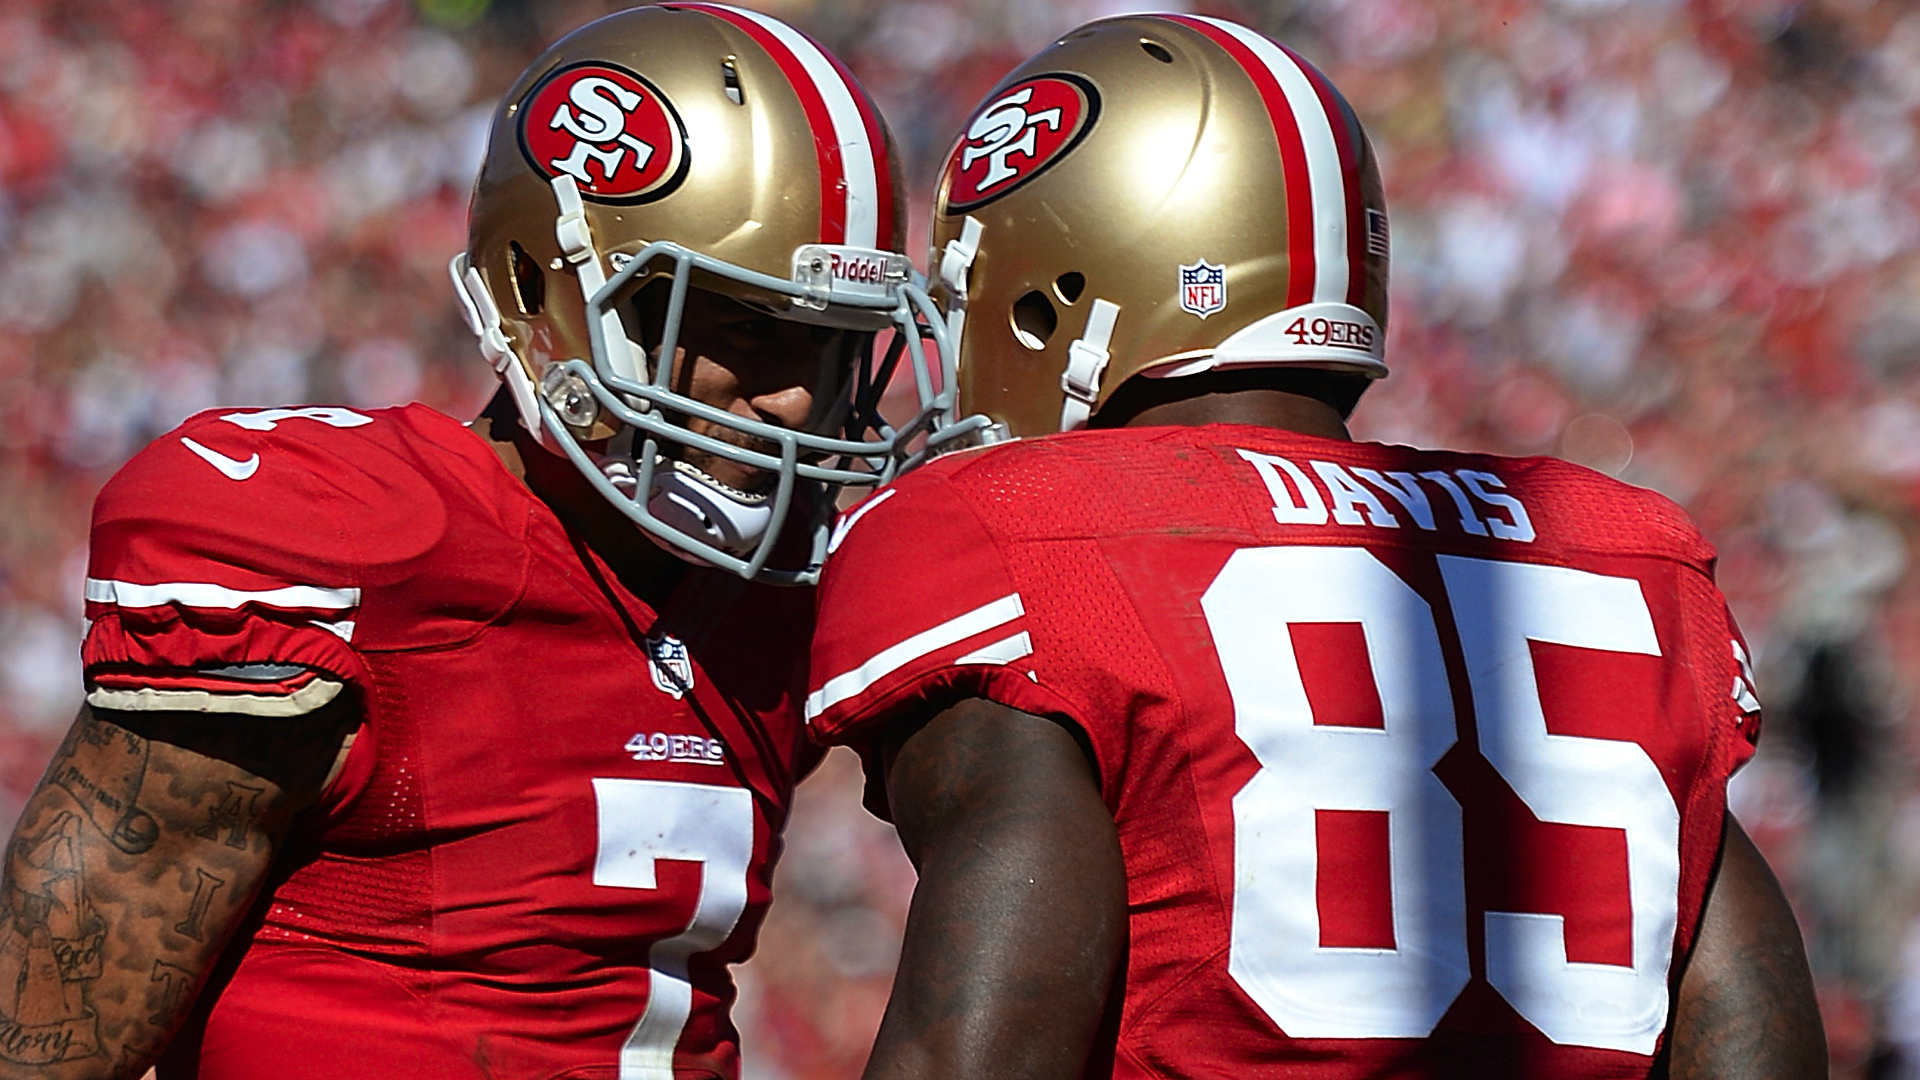 Report: Joe Staley and Vernon Davis involved in altercation about Colin Kaepernick